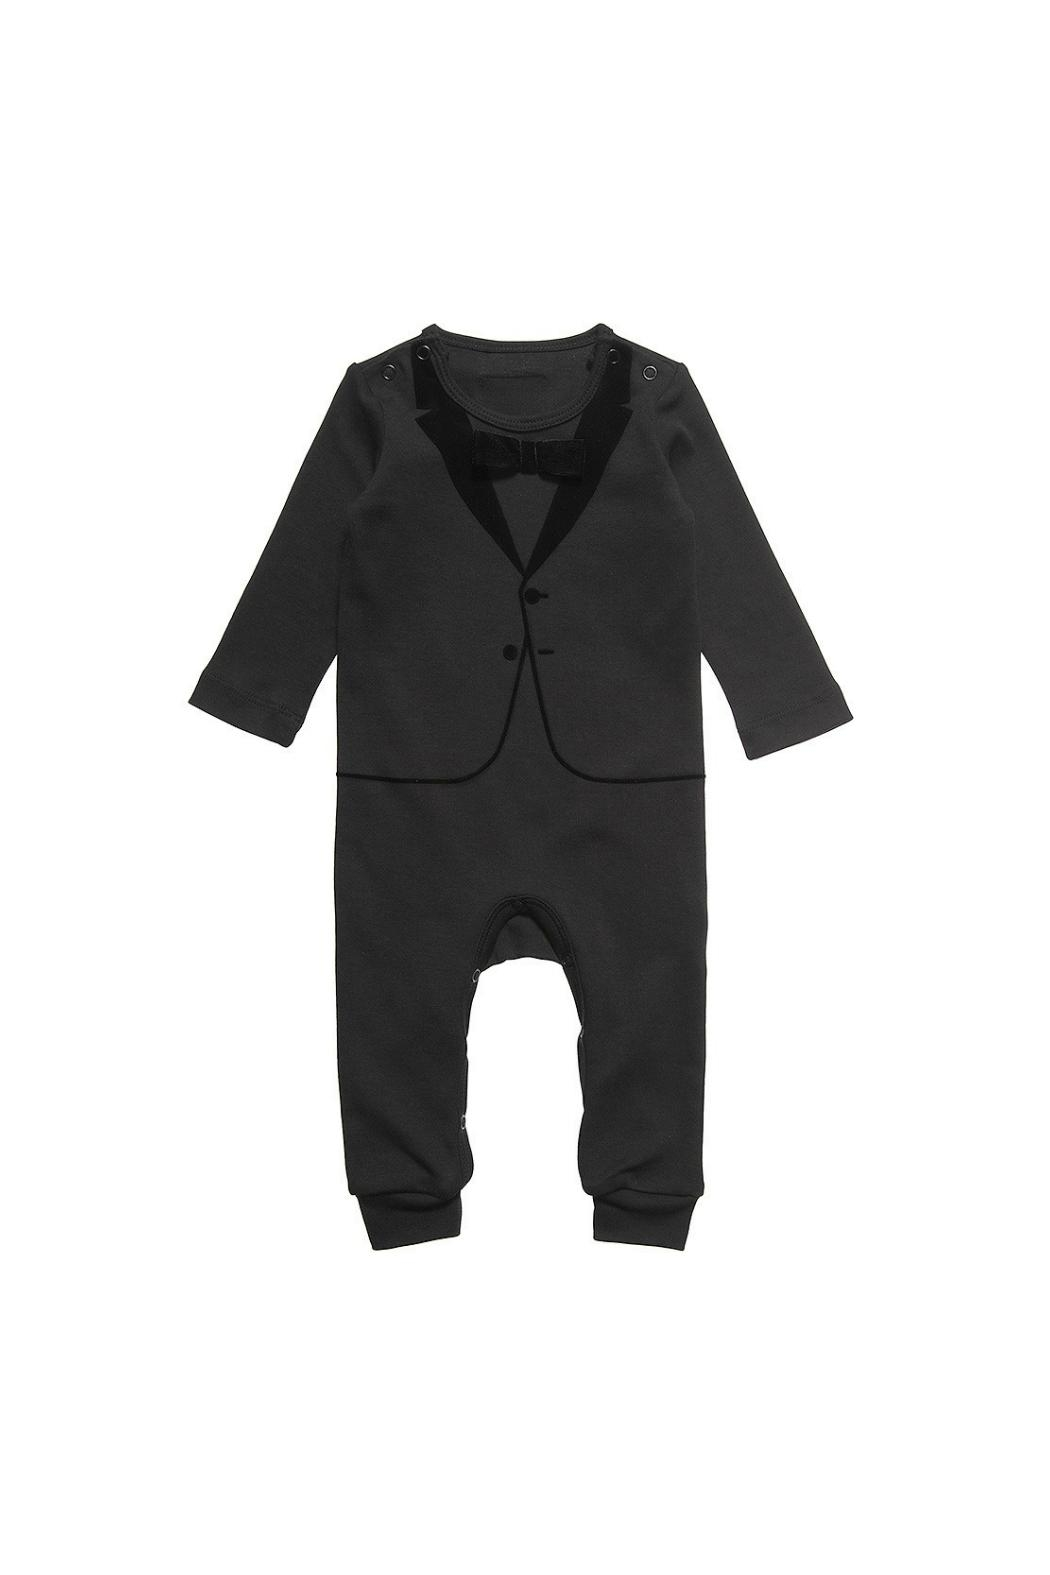 THE TINY UNIVERSE Velvet Tuxedo Black - Main Image